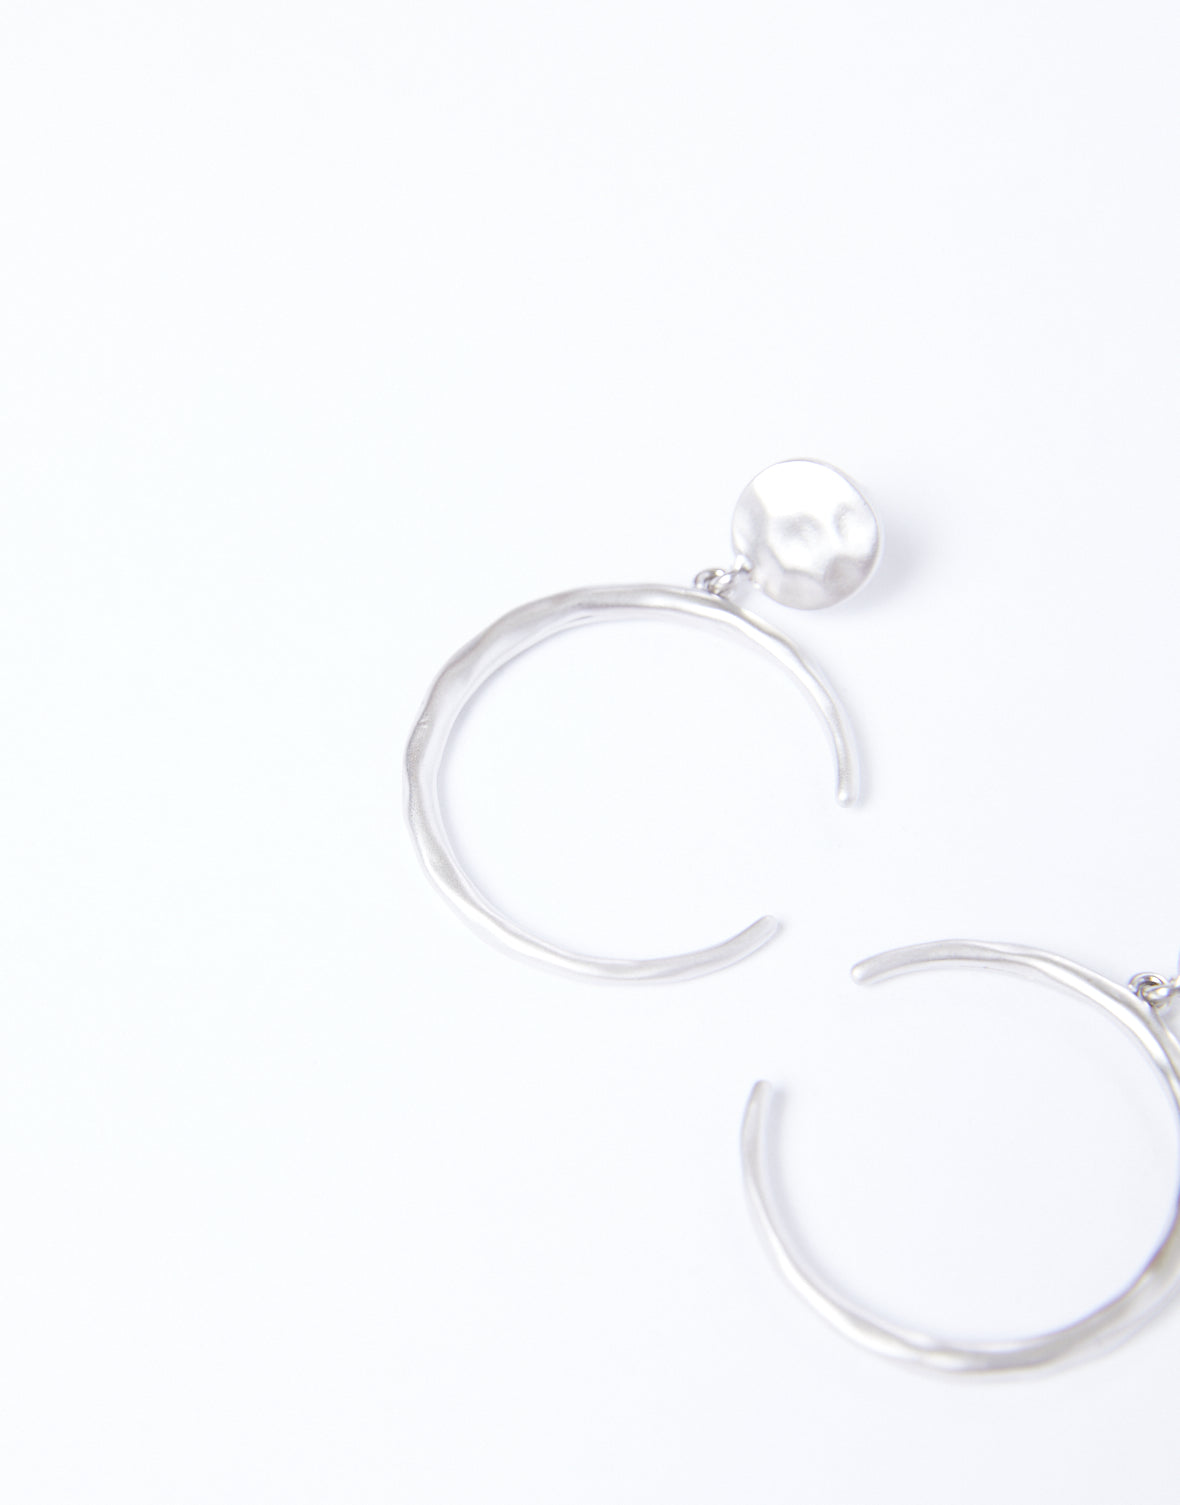 Hammered Sideways Crescent Earrings